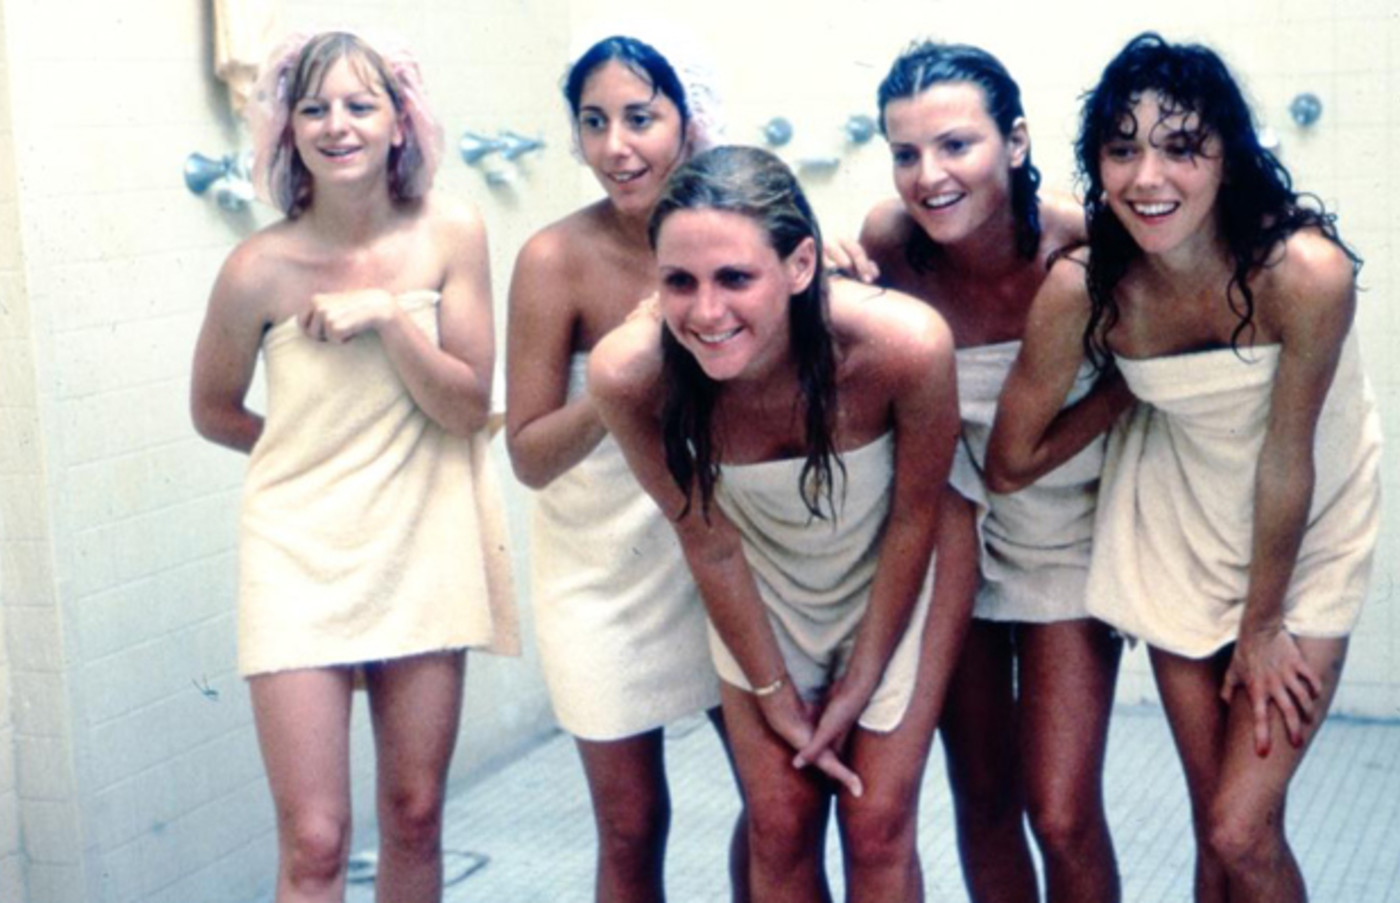 married adult amateur nudists and friend